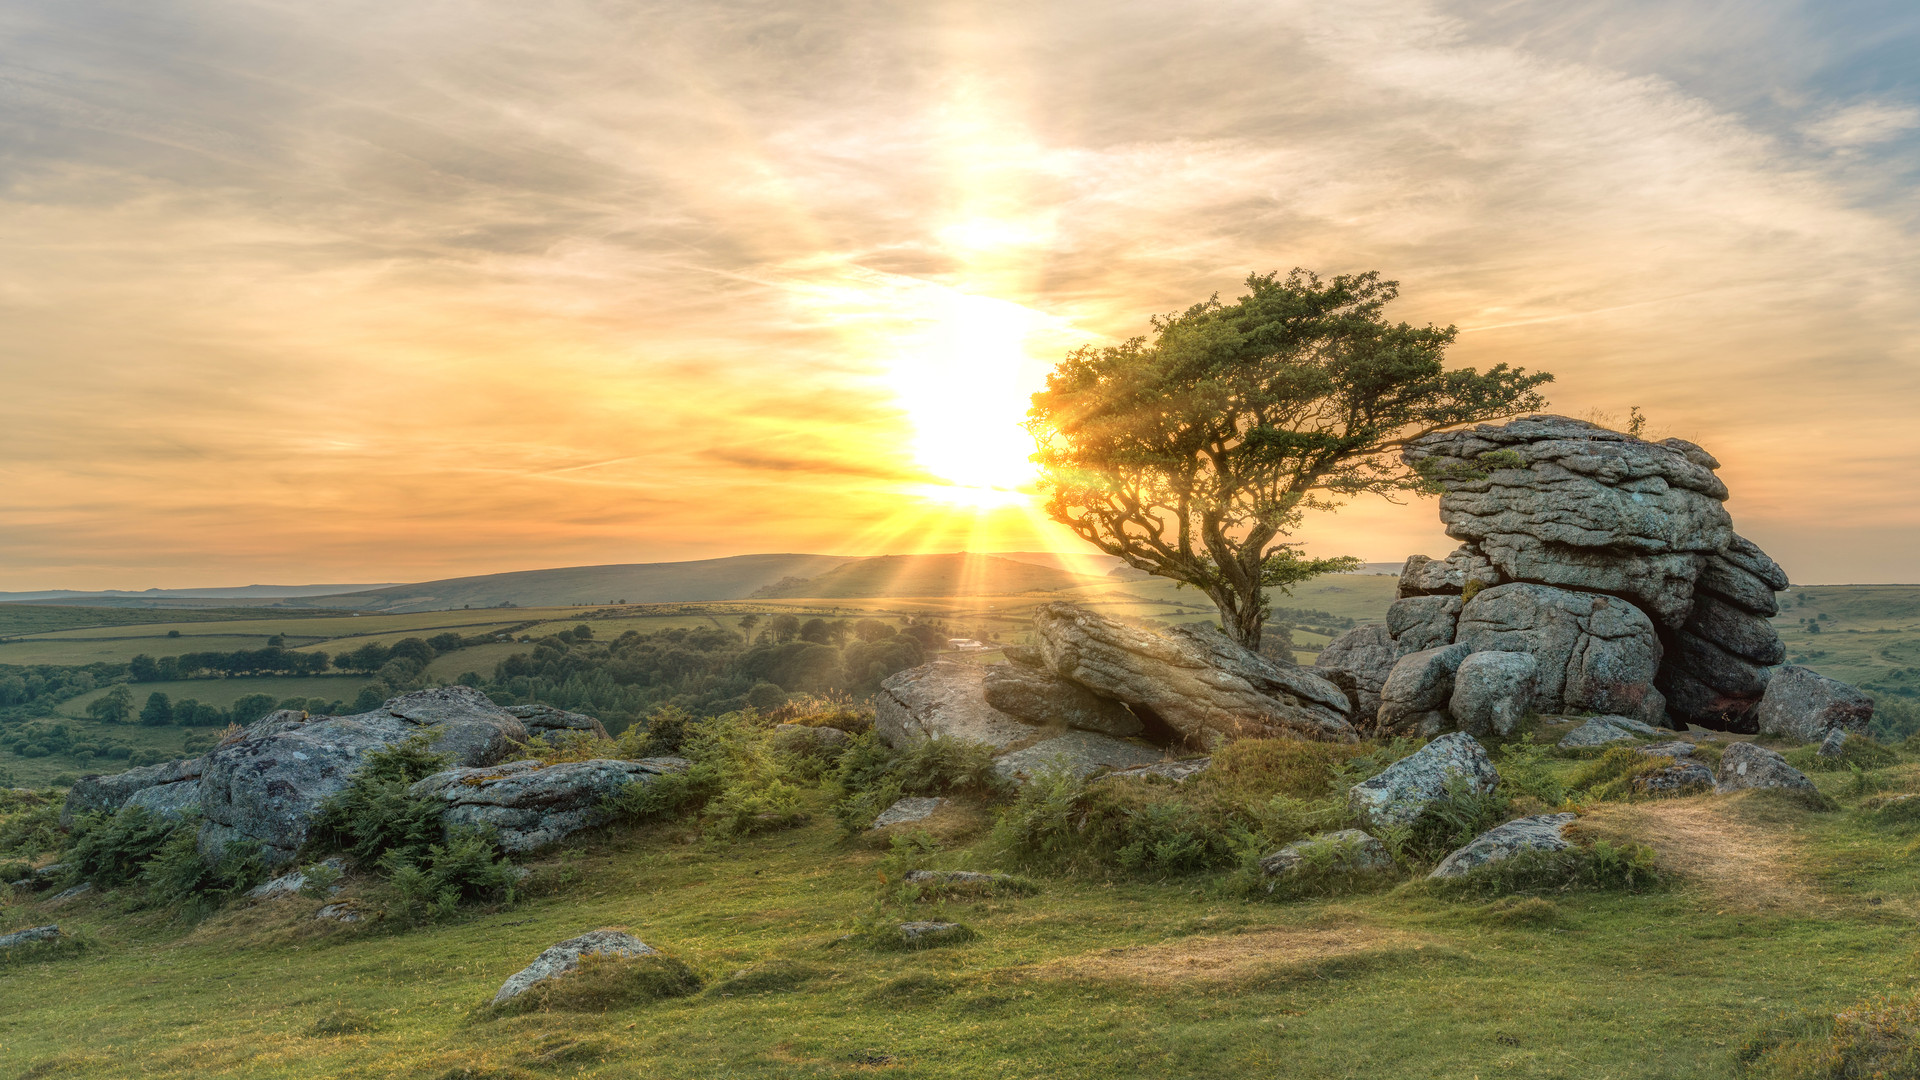 Sunset Emsworthy Rocks 2018